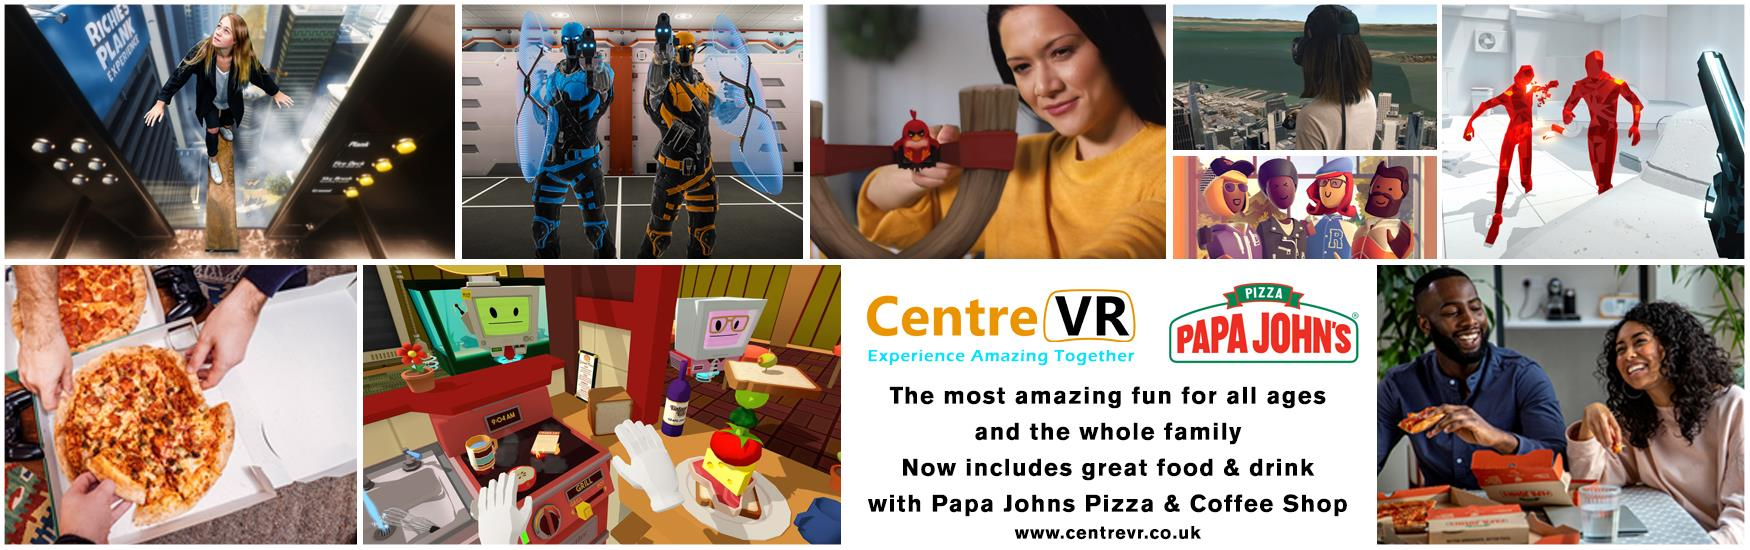 Collage of images showing the experience at Centre VR virtual reality including a pizza promotion with papa johns